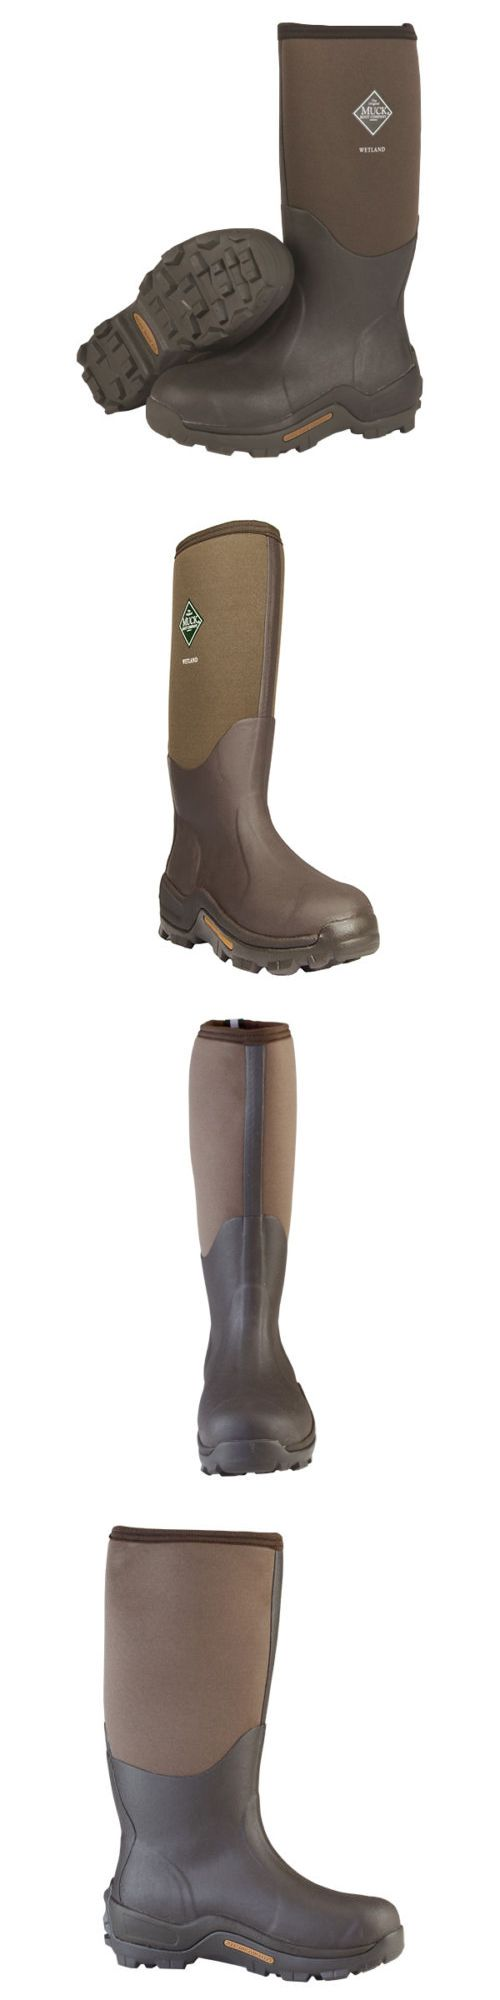 Hunting Footwear 153008: Muck Boot Company Wetland Premium Field Boot Wet-998K Color:Bark Men Size 12 -> BUY IT NOW ONLY: $102.95 on eBay!